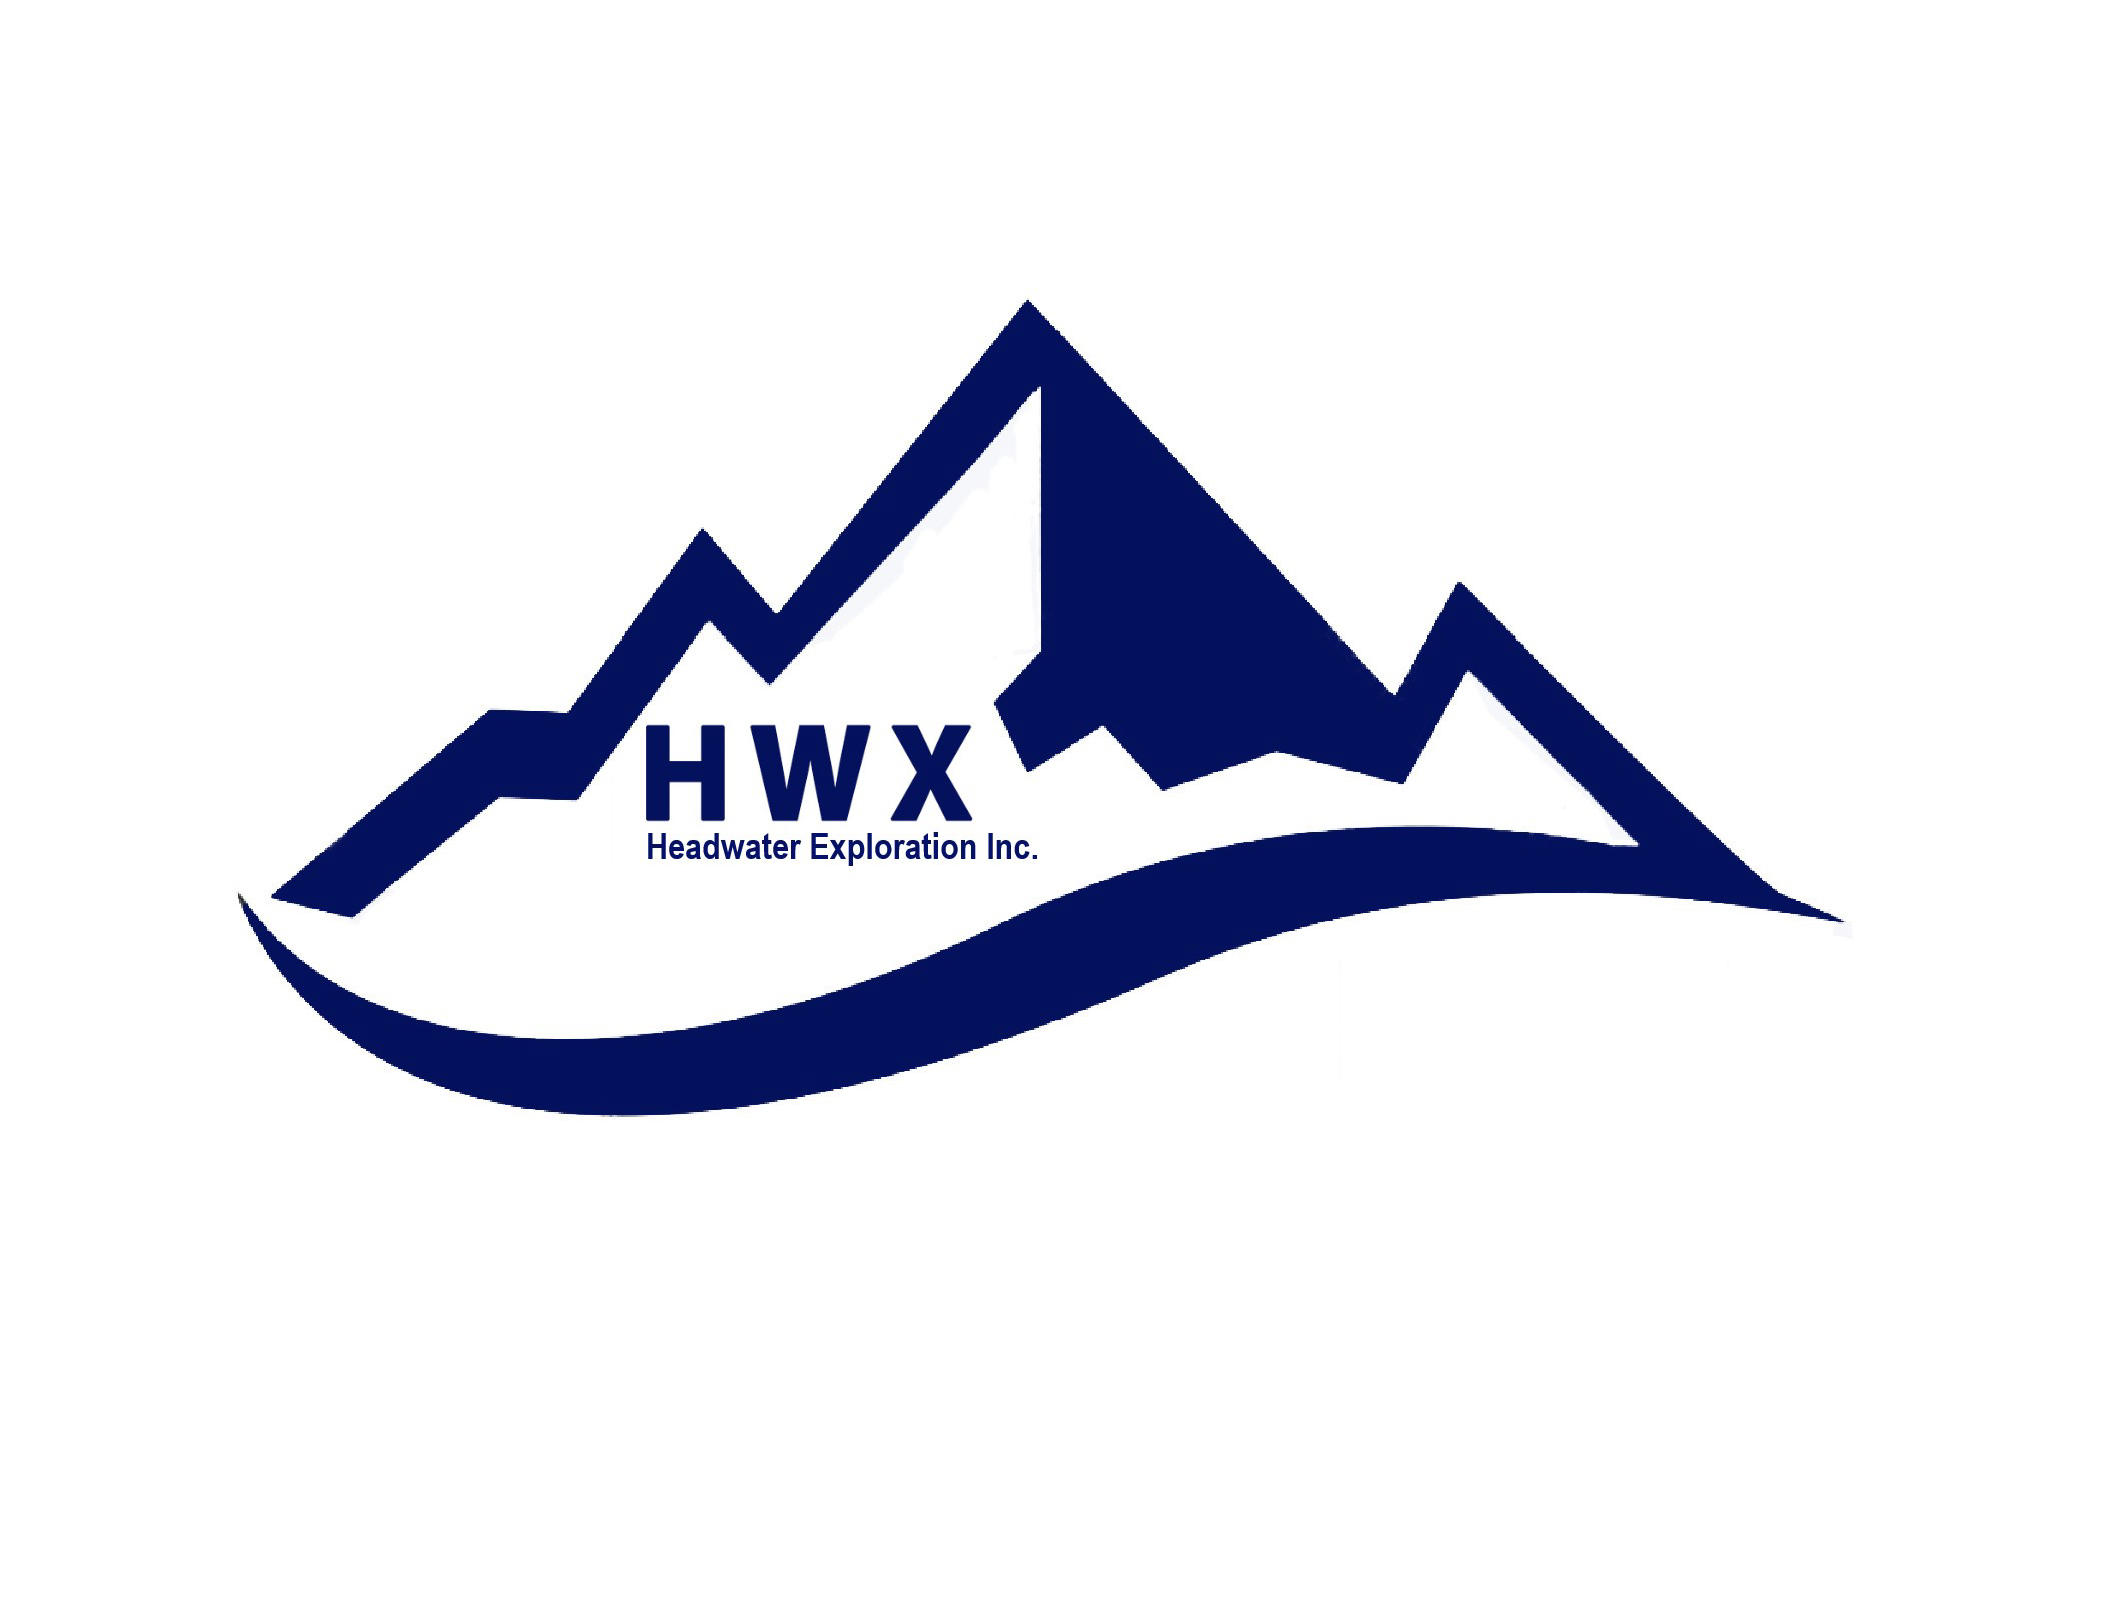 Headwater Exploration Inc. (formerly Corridor Resources Inc